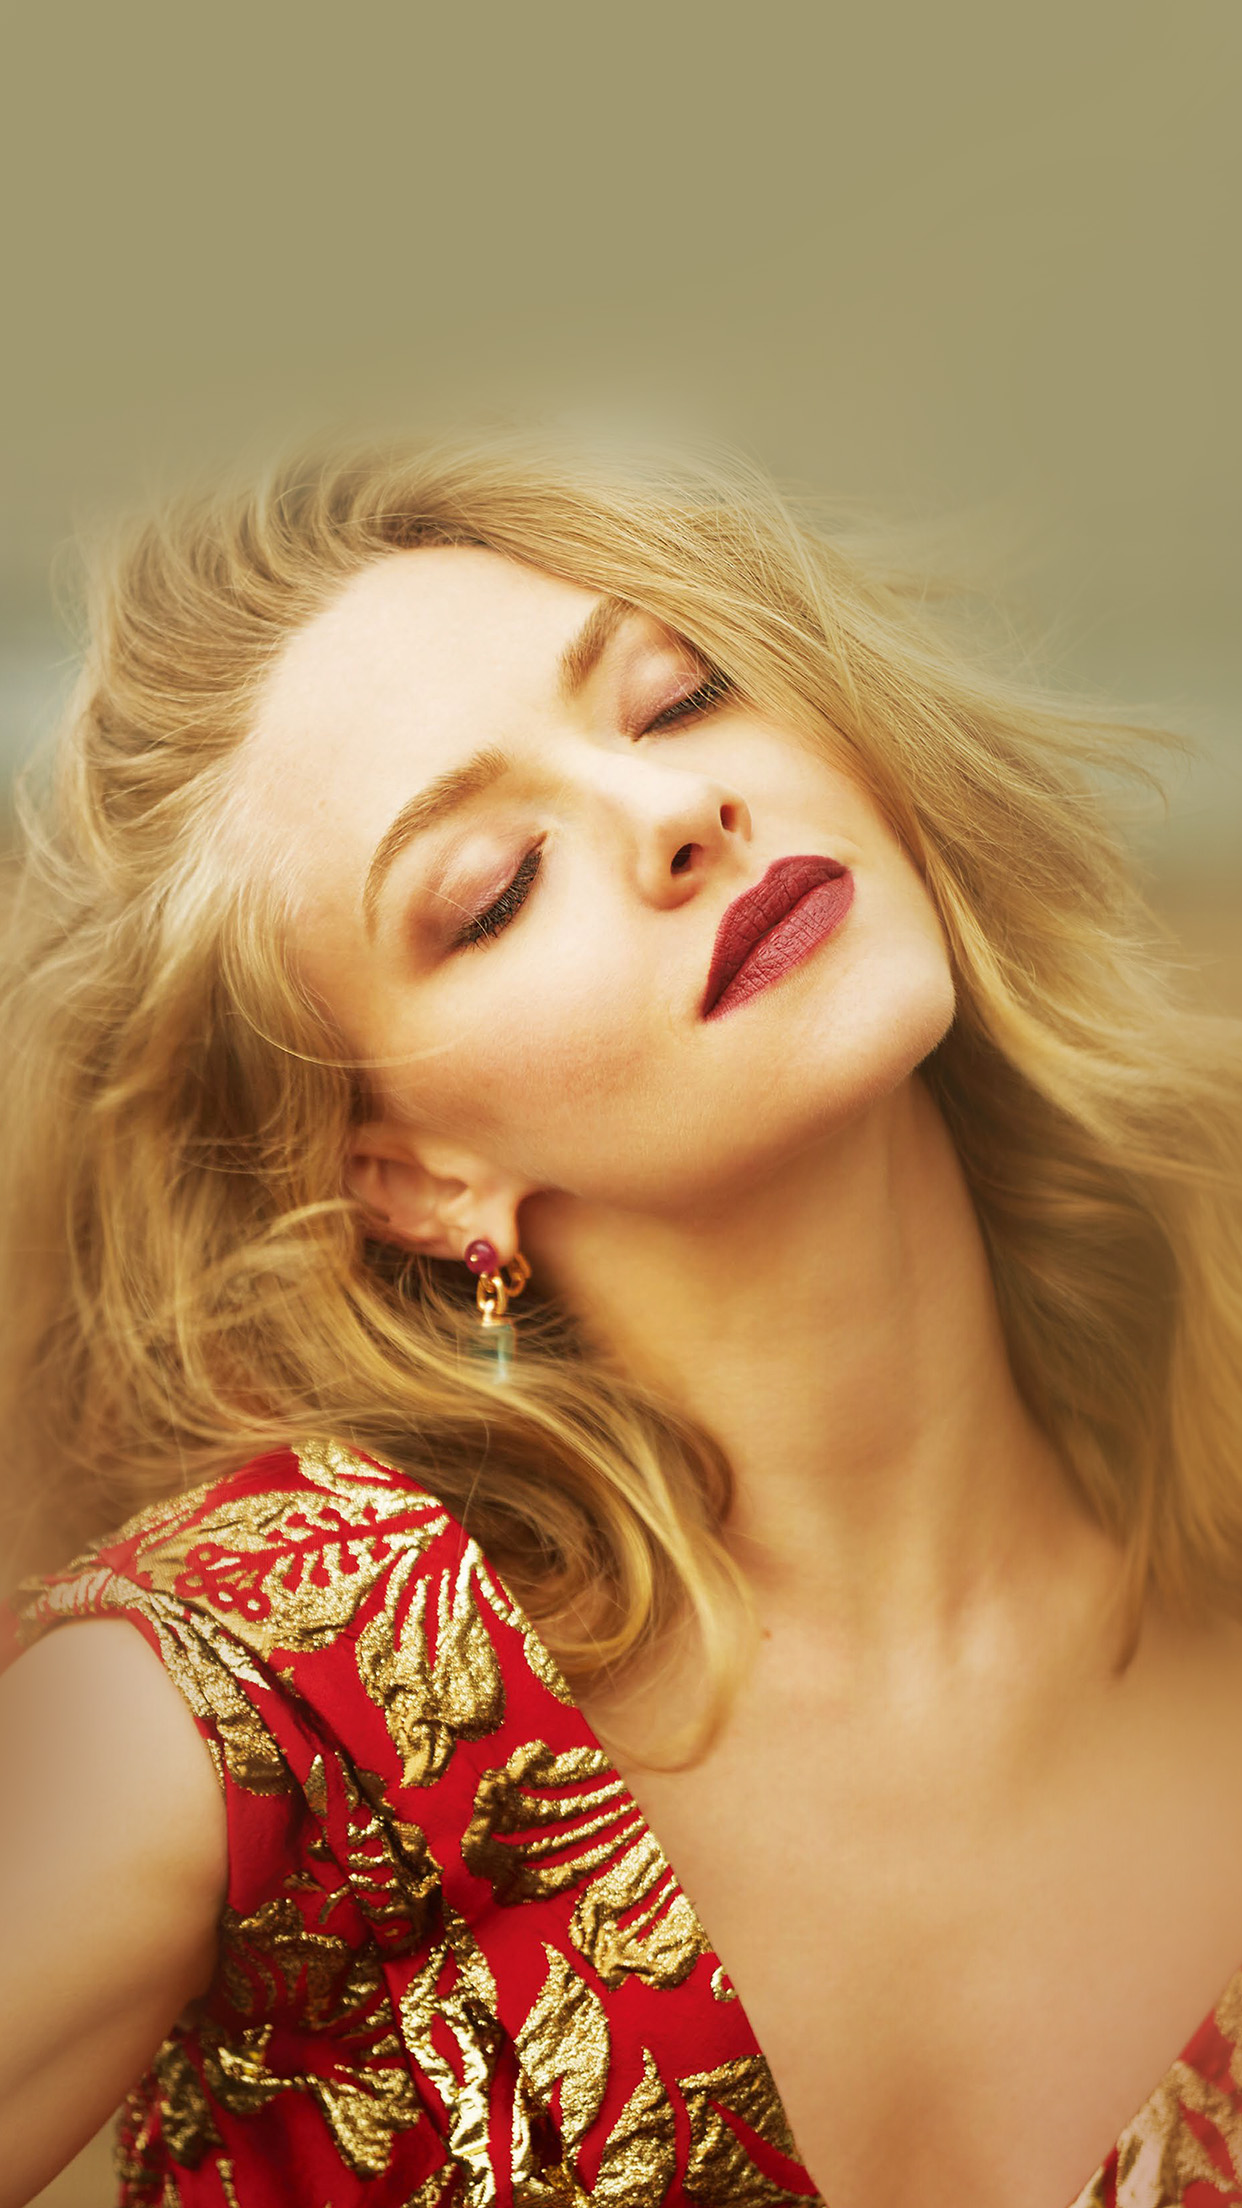 Gold Wallpaper Iphone 5 Papers Co Iphone Wallpaper Hk72 Amanda Seyfried